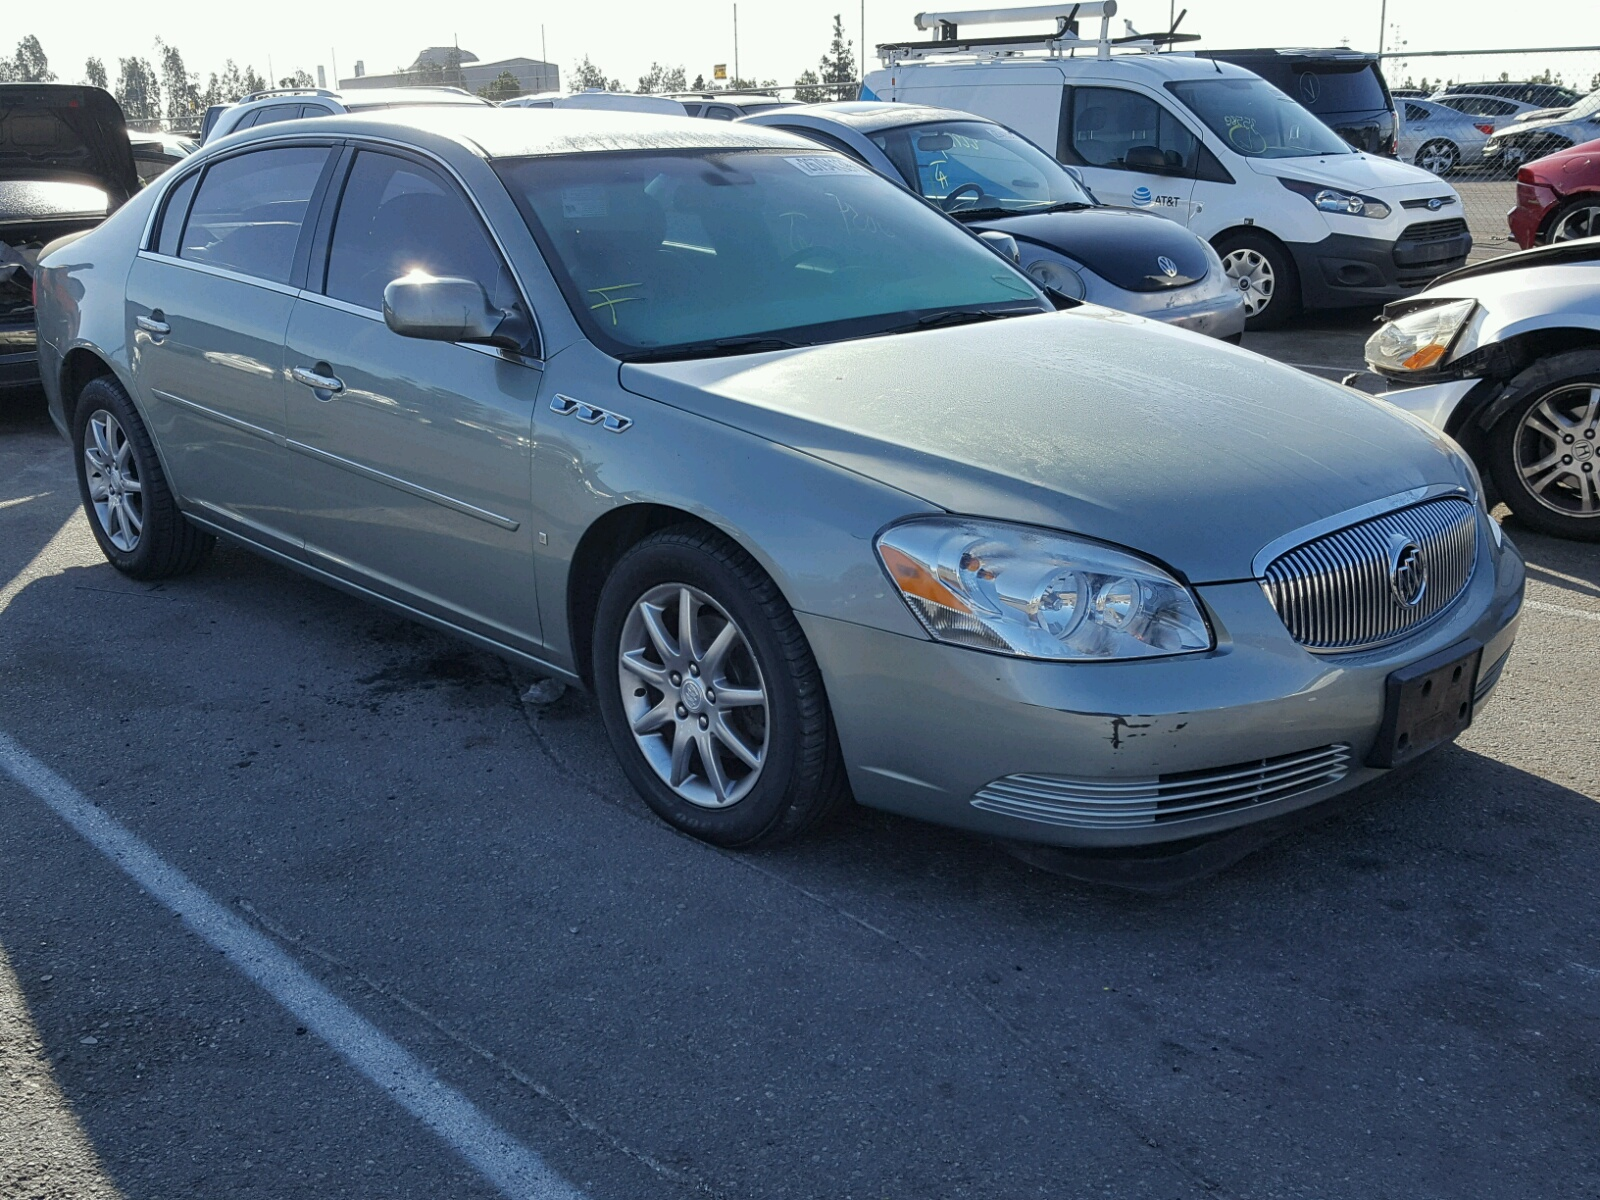 hammond lucerne cx view buick online sale auto of for left auctions cert salvage copart en carfinder lot on black title in